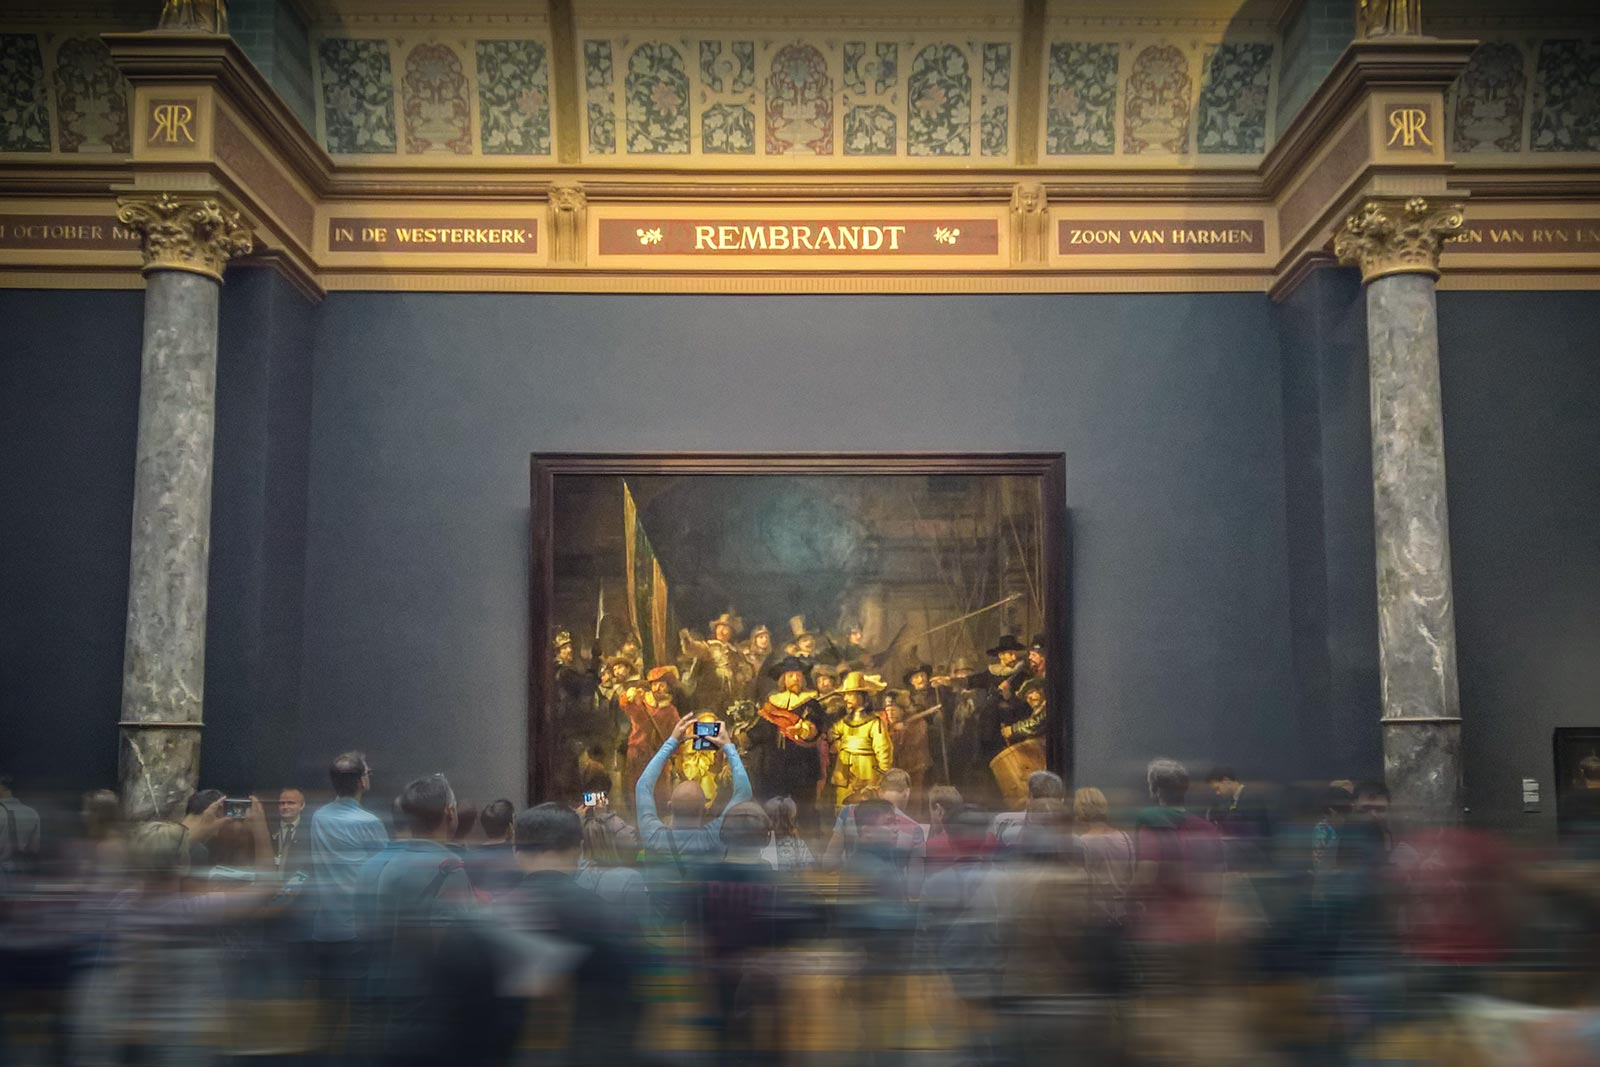 Art gallery with Rembrandt van Rijn's 'The Night Watch' (1642) visible beyond a blurred crowd of visitors